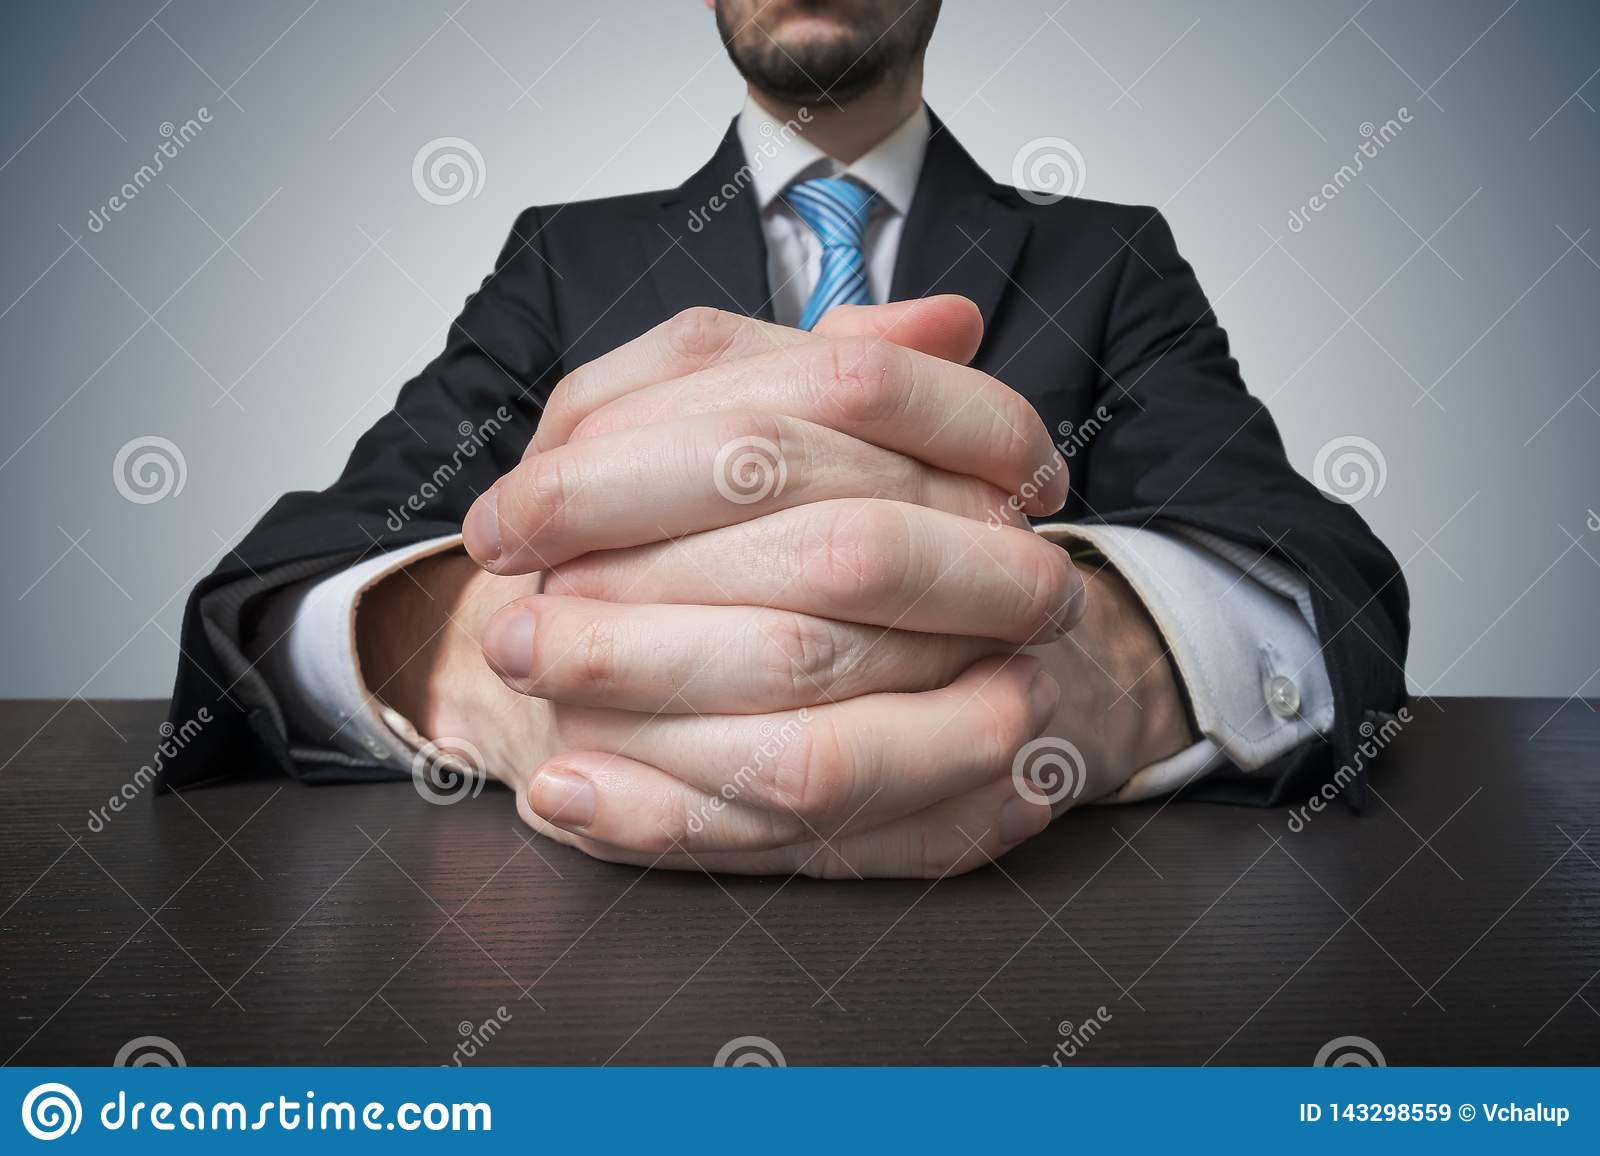 Sitting businessman with clasped hands. Negotiation and dealing concept.